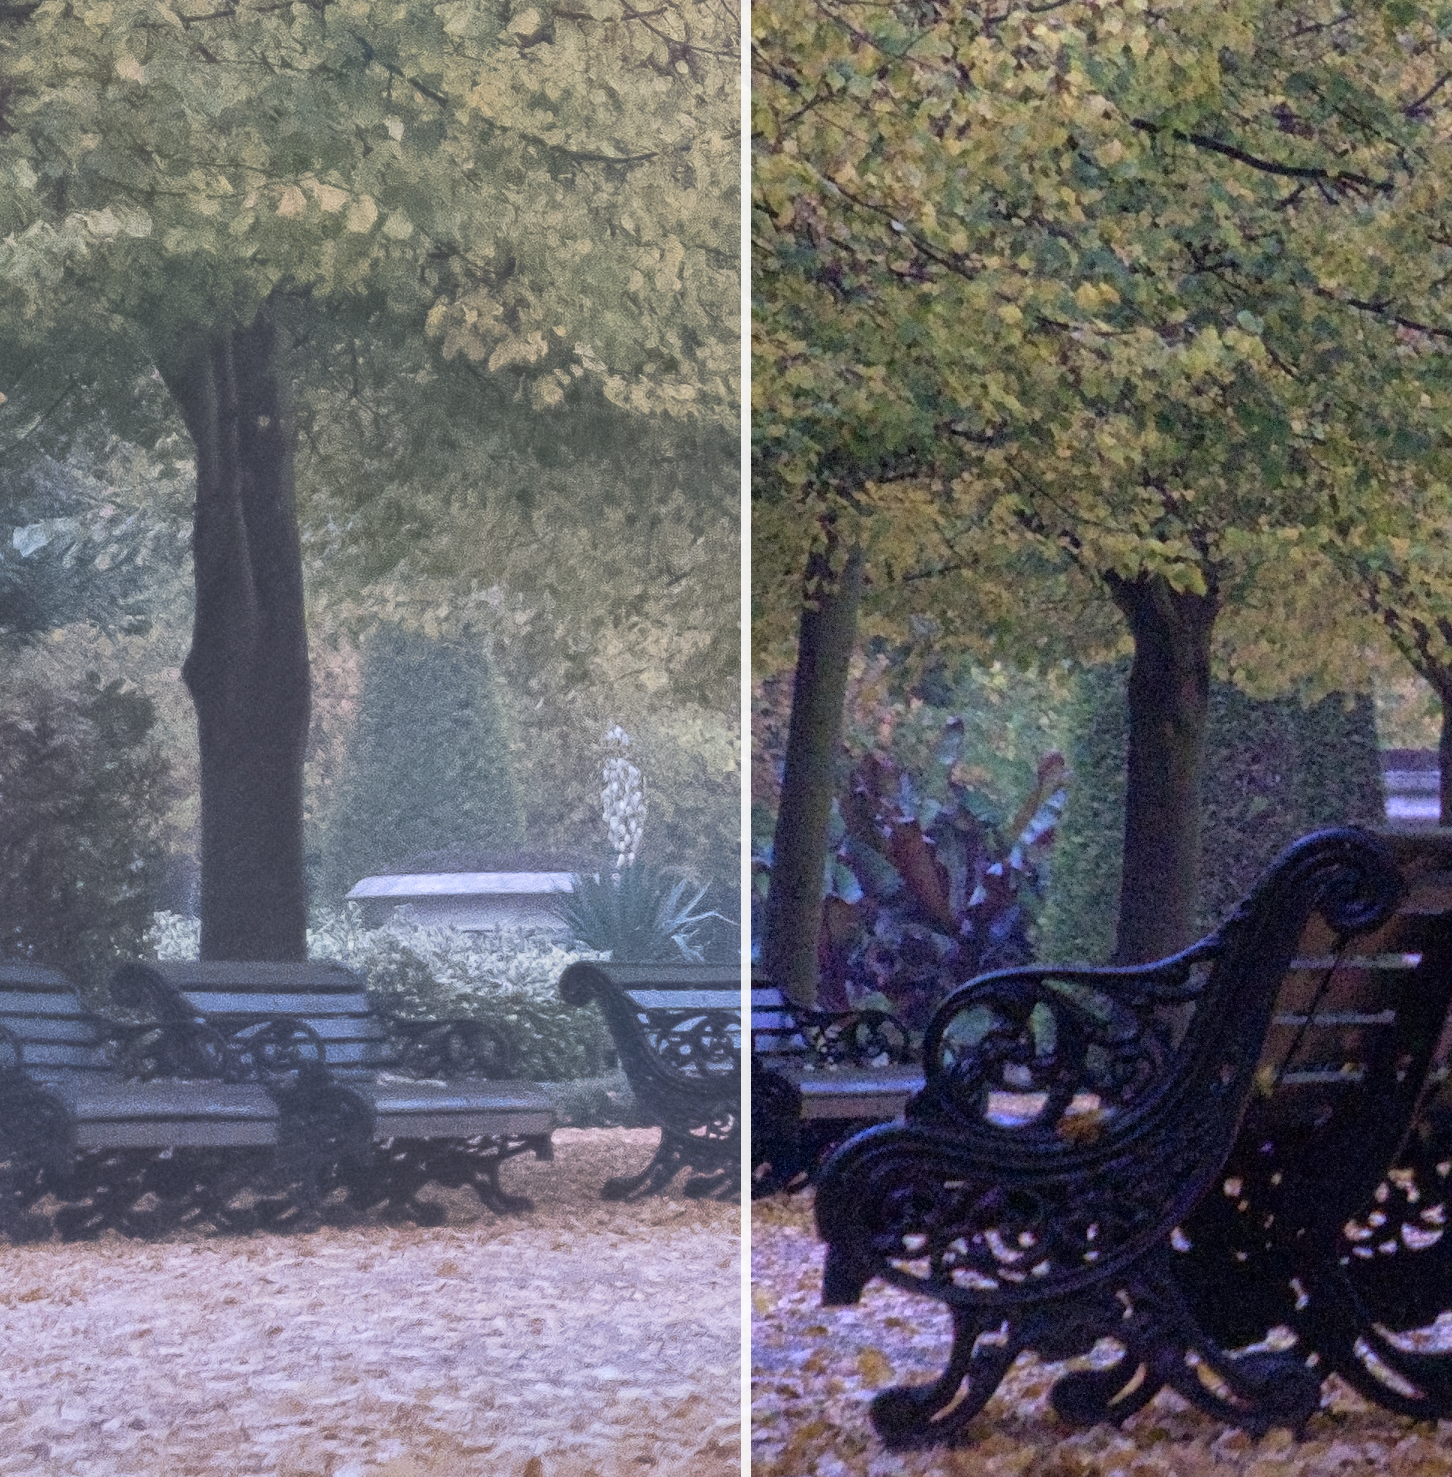 Fuji X-T2 RAW Processed with Adobe Lightroom CC on the left and MacPhun Luminar on the right.